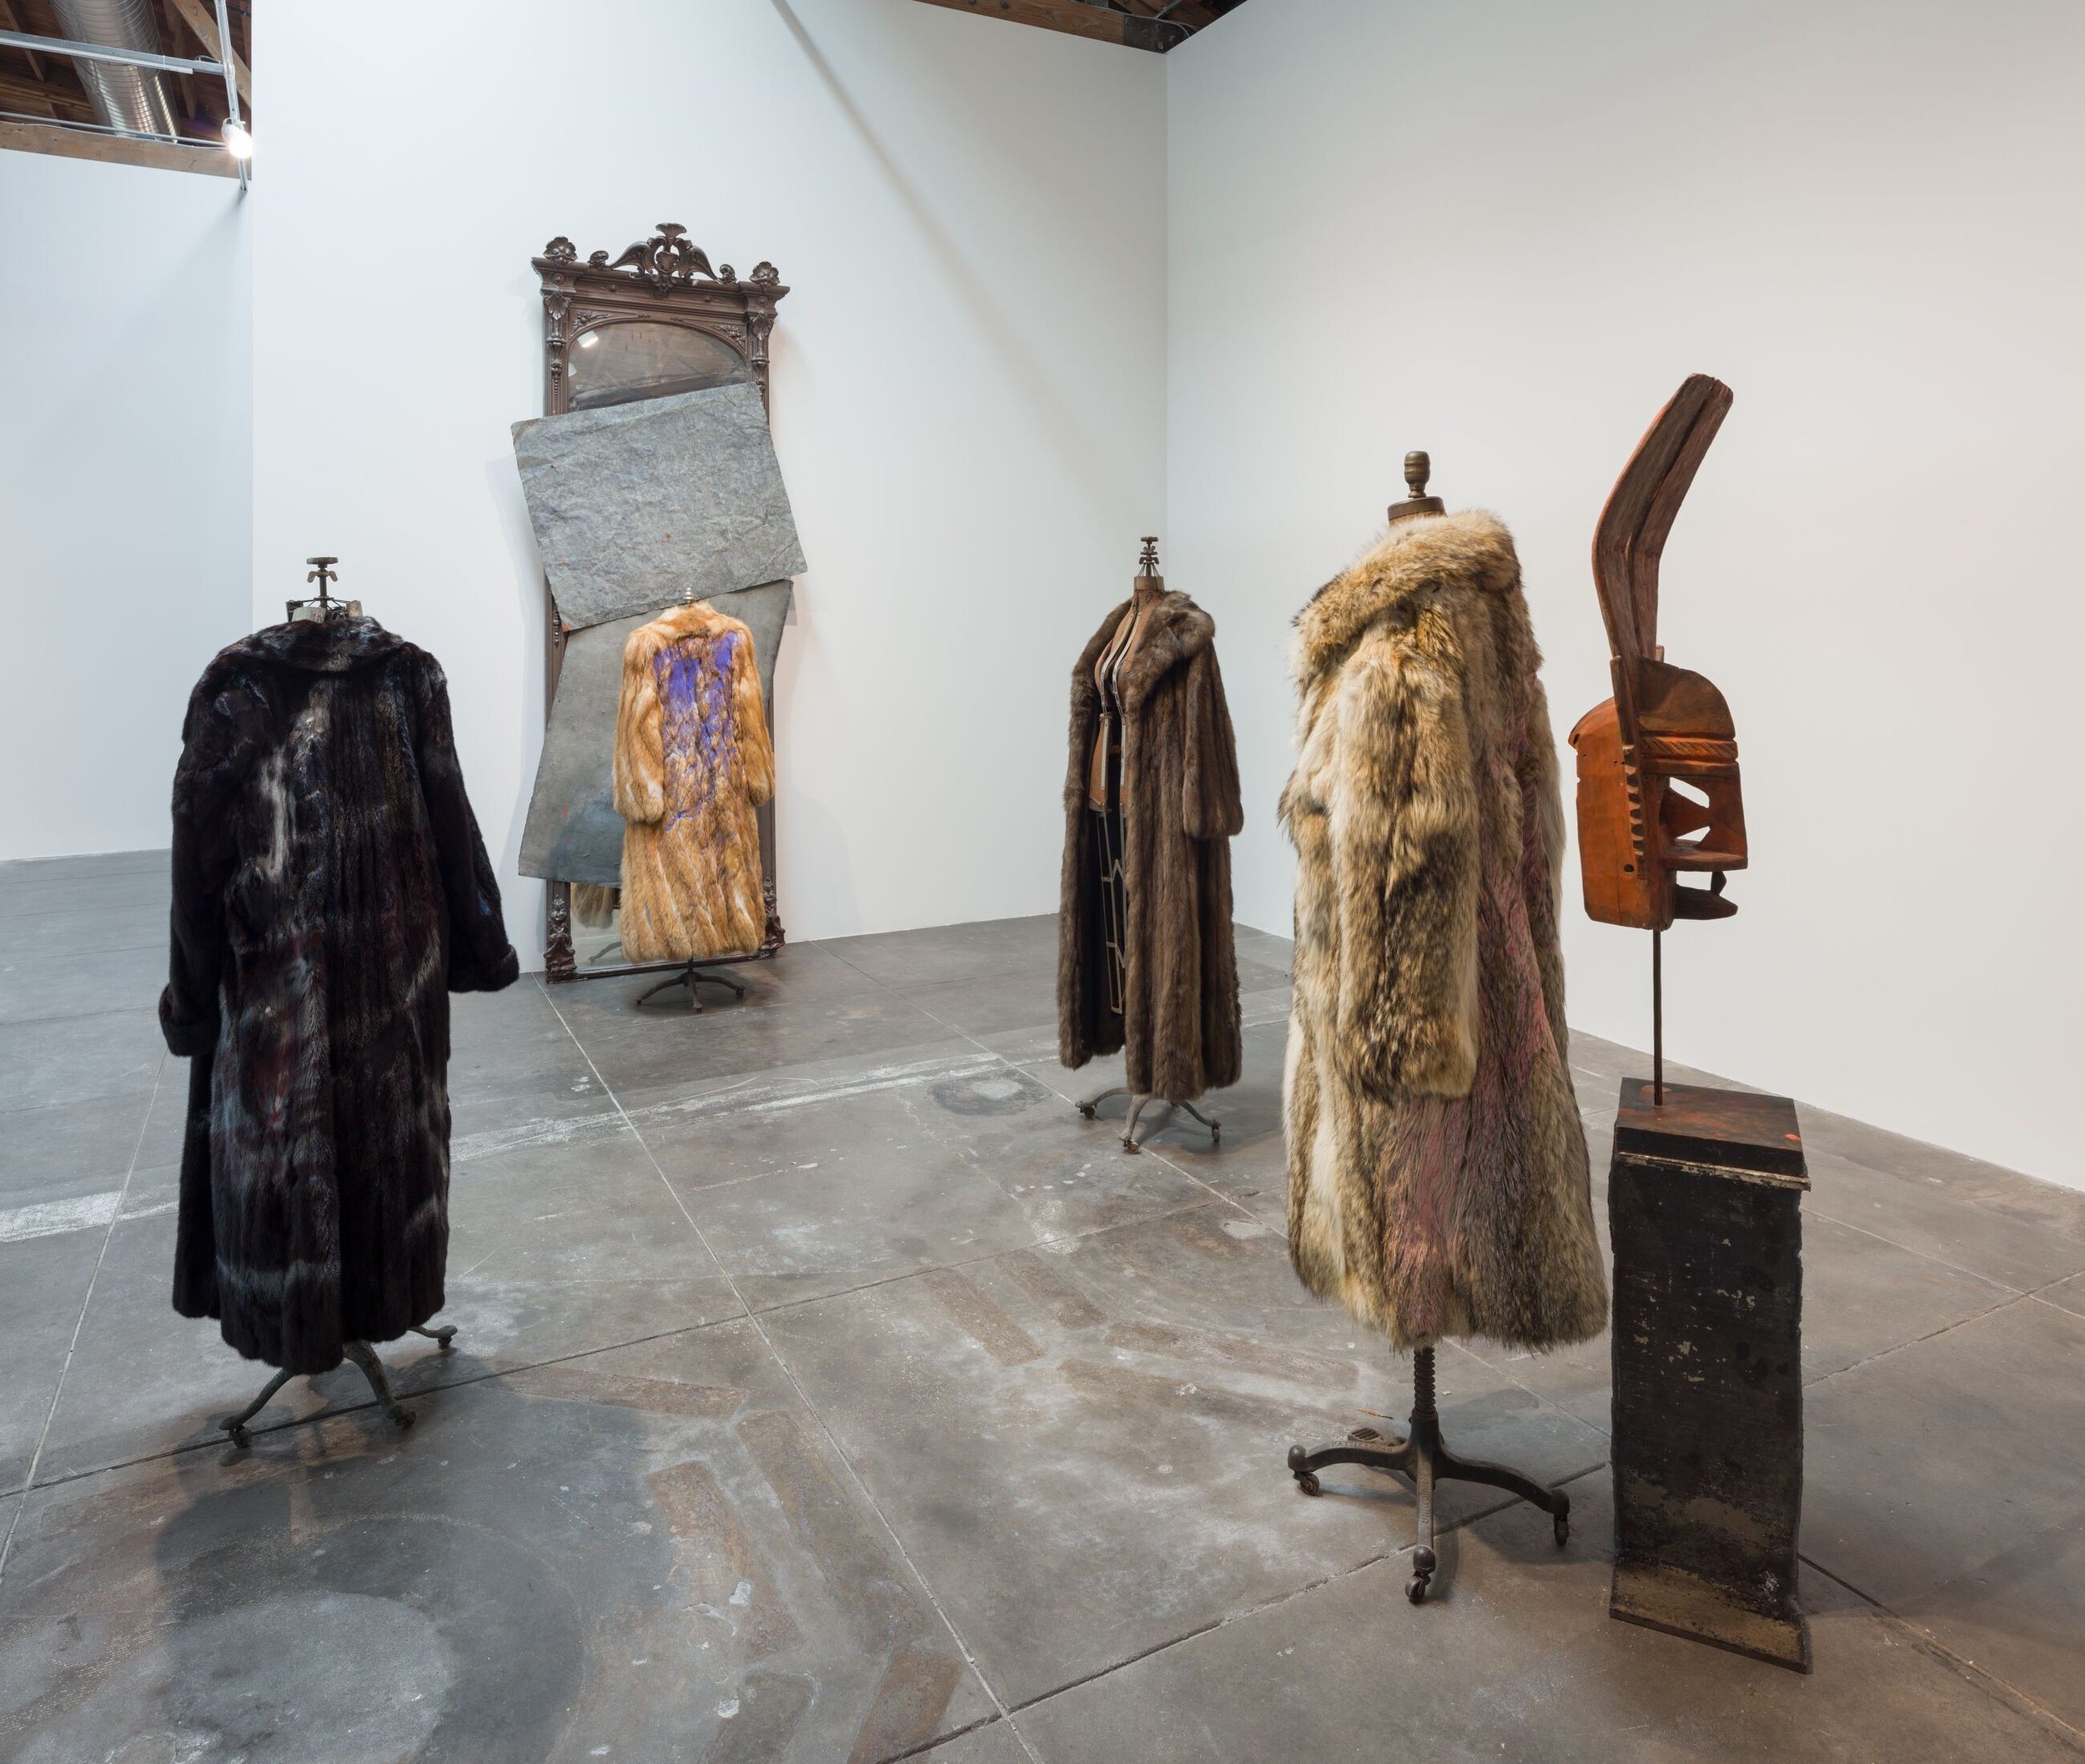 Installation view, 'David Hammons', Hauser & Wirth Los Angeles, 2019 ©David Hammons Courtesy the artist and Hauser & Wirt hPhoto: Fredrik Nilsen Studio